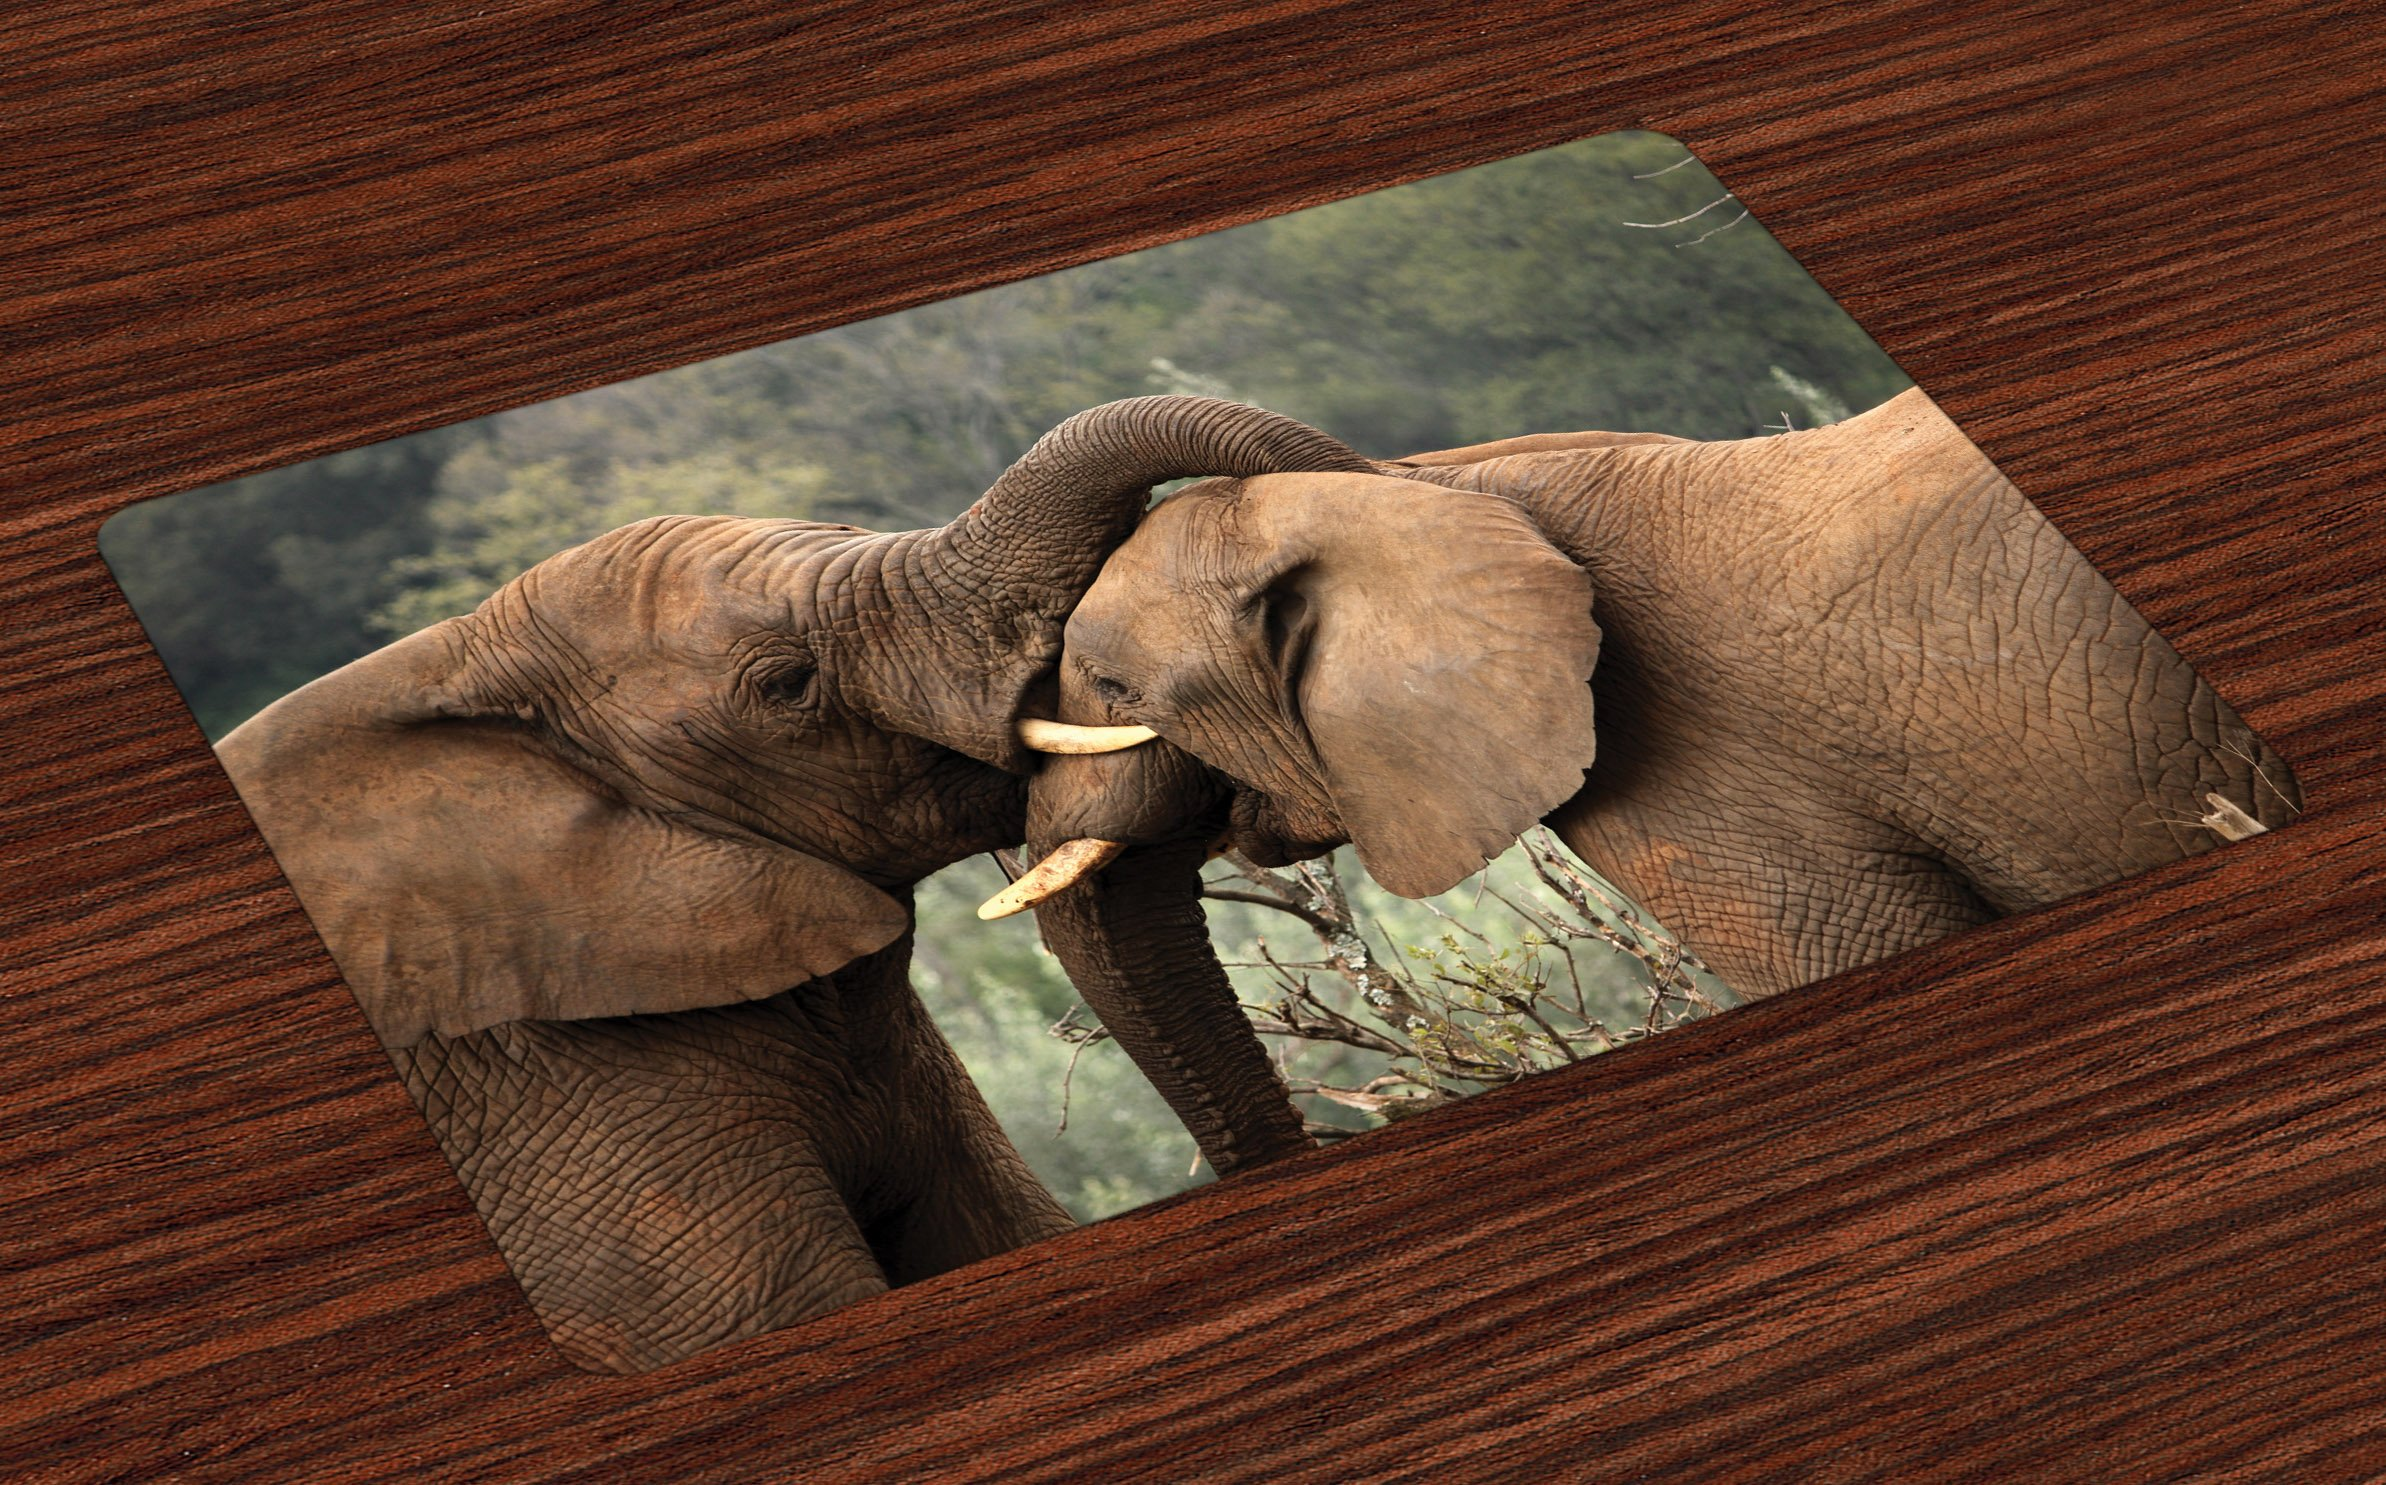 Ambesonne Safari Place Mats Set of 4, Two Wild Savannah Elephants Wrestling Cute Nature Icons South African Animals Photo, Washable Fabric Placemats for Dining Room Kitchen Table Decor, Brown Green